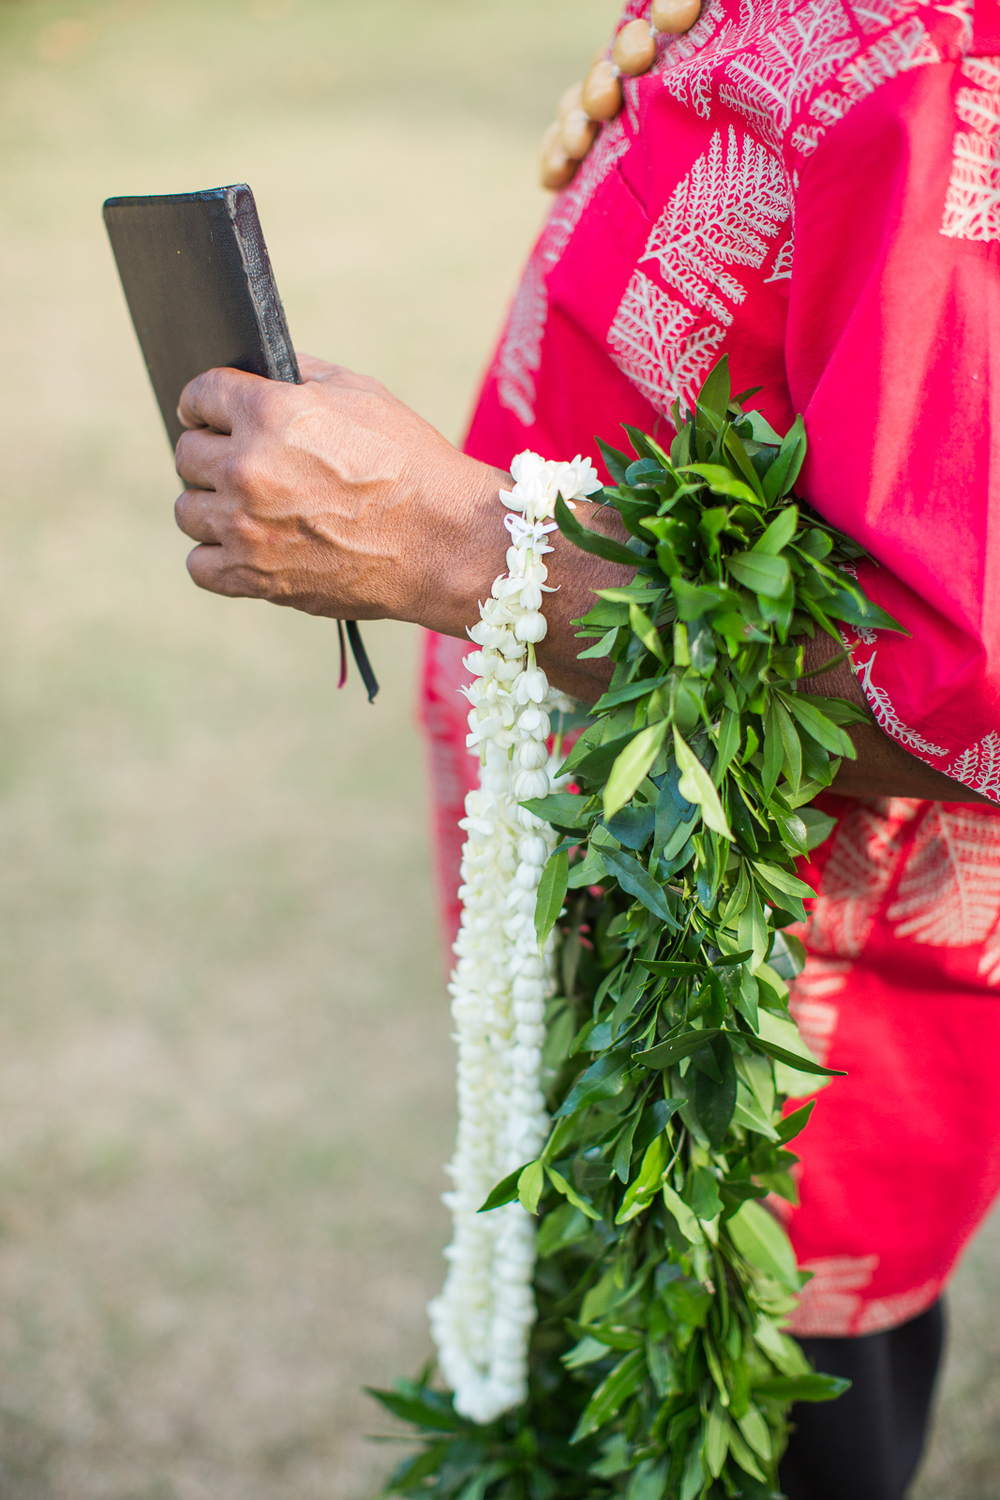 Leis for the Bride and Groom